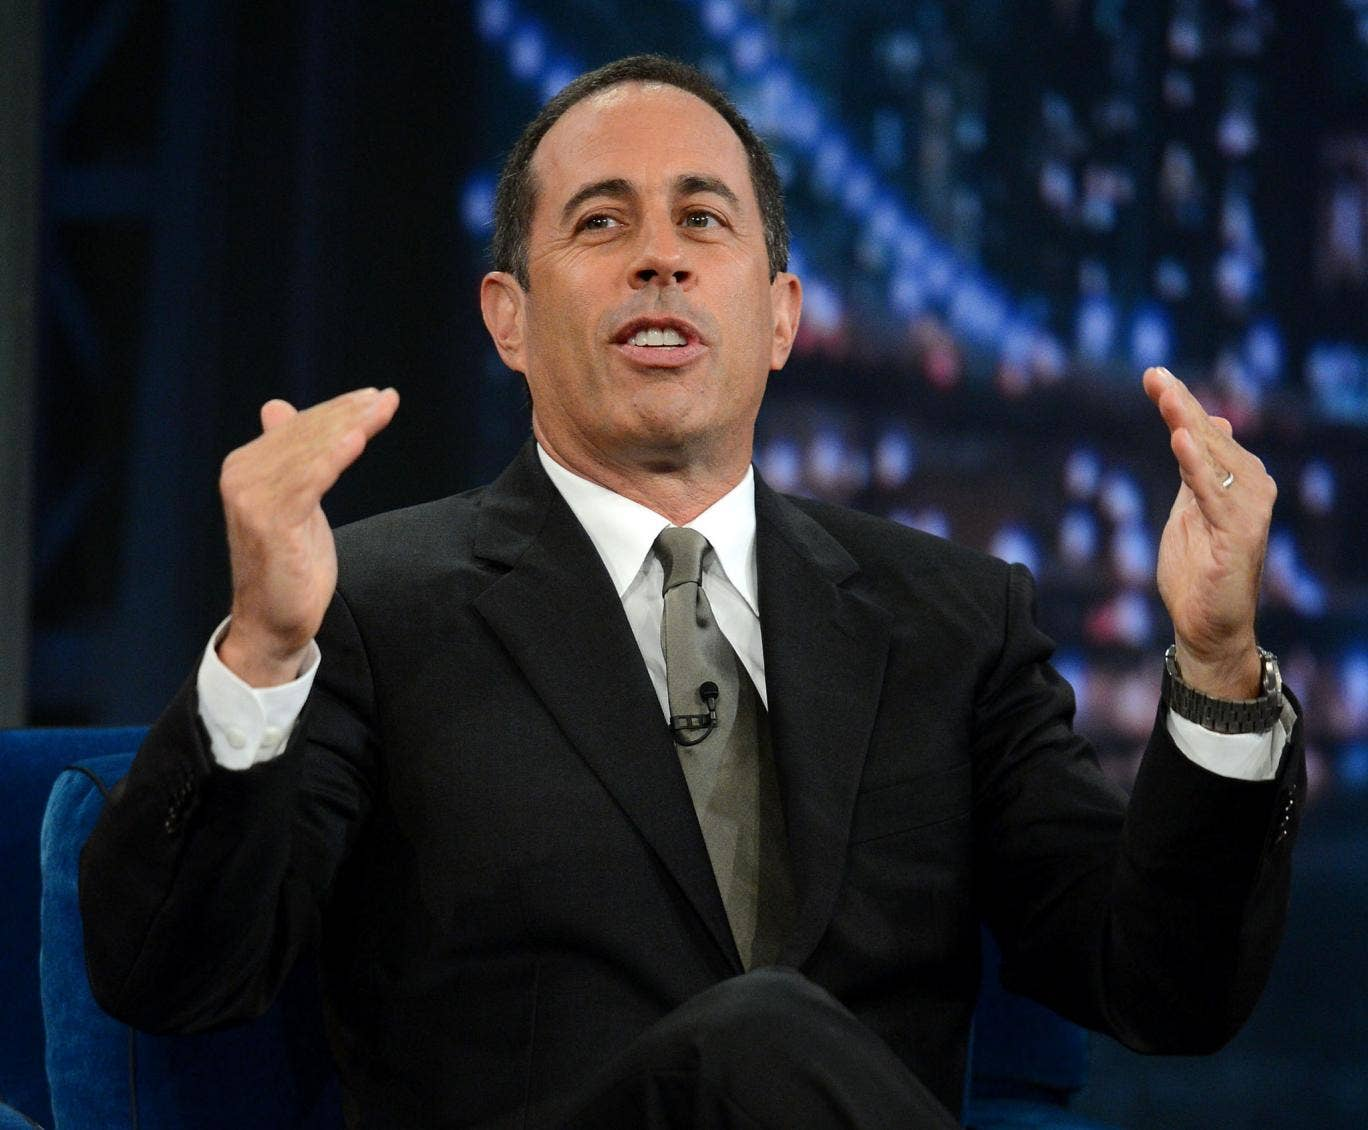 Jerry Seinfeld has collaborated with Wale on his new album